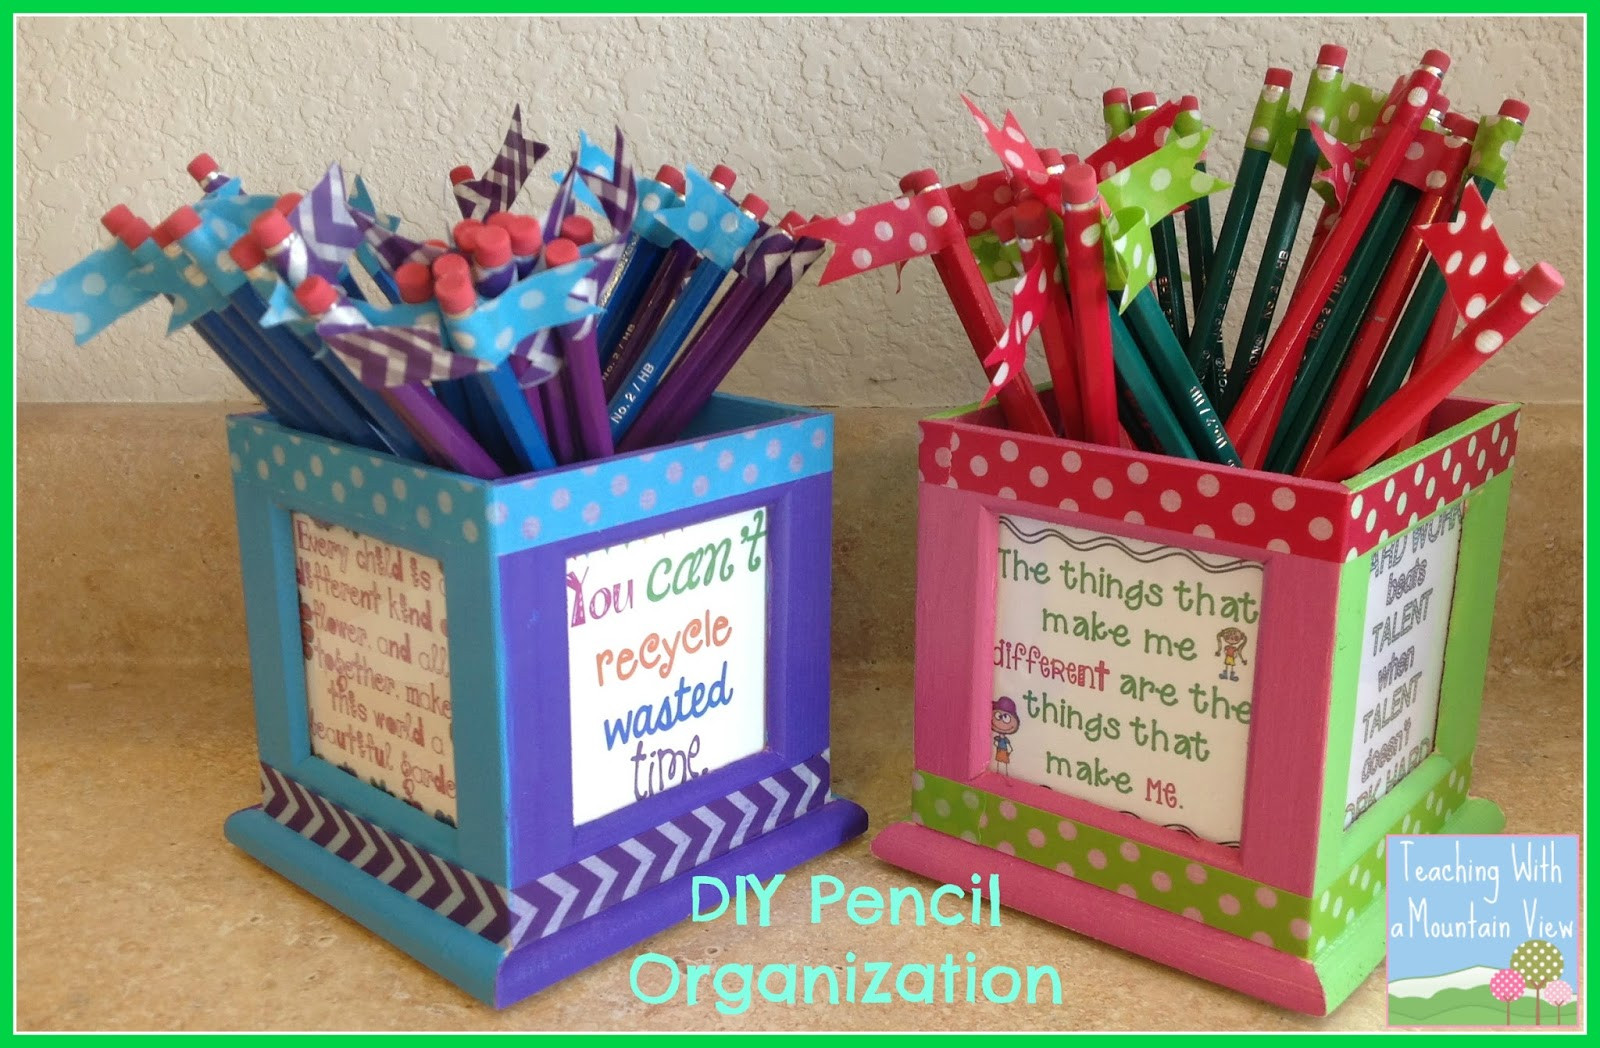 Best ideas about DIY Pencil Organizer . Save or Pin Teaching With a Mountain View DIY Pencil Organizer Now.